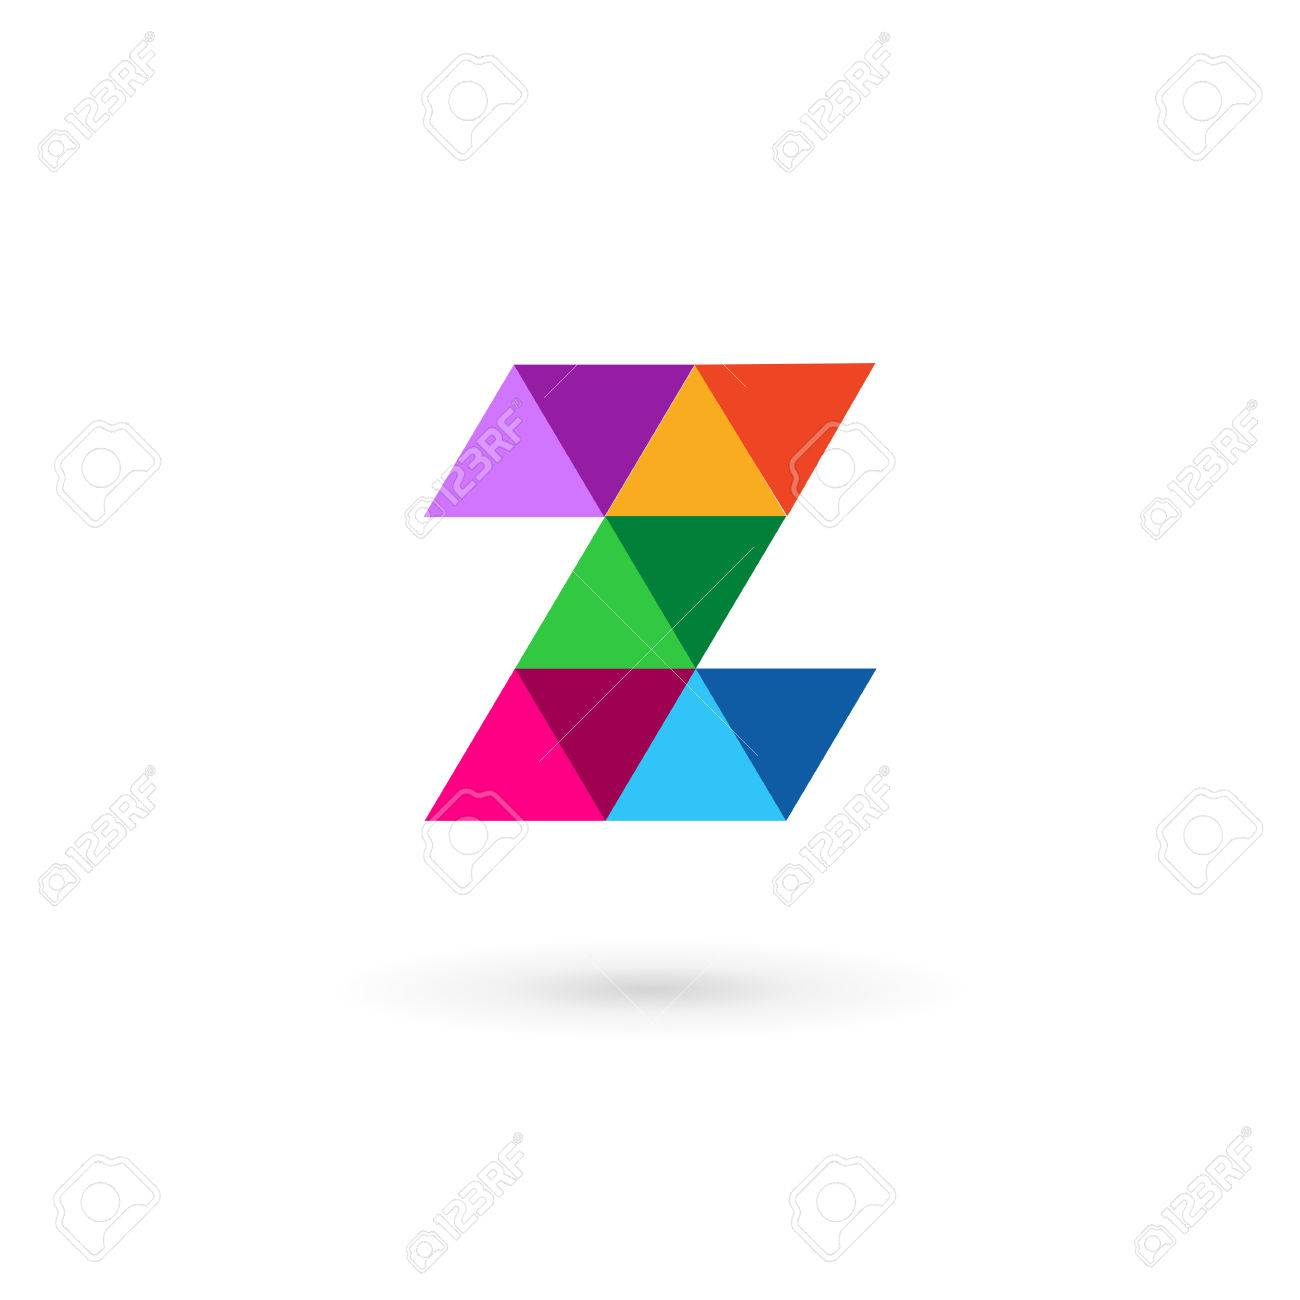 letter z mosaic logo icon design template elements royalty free